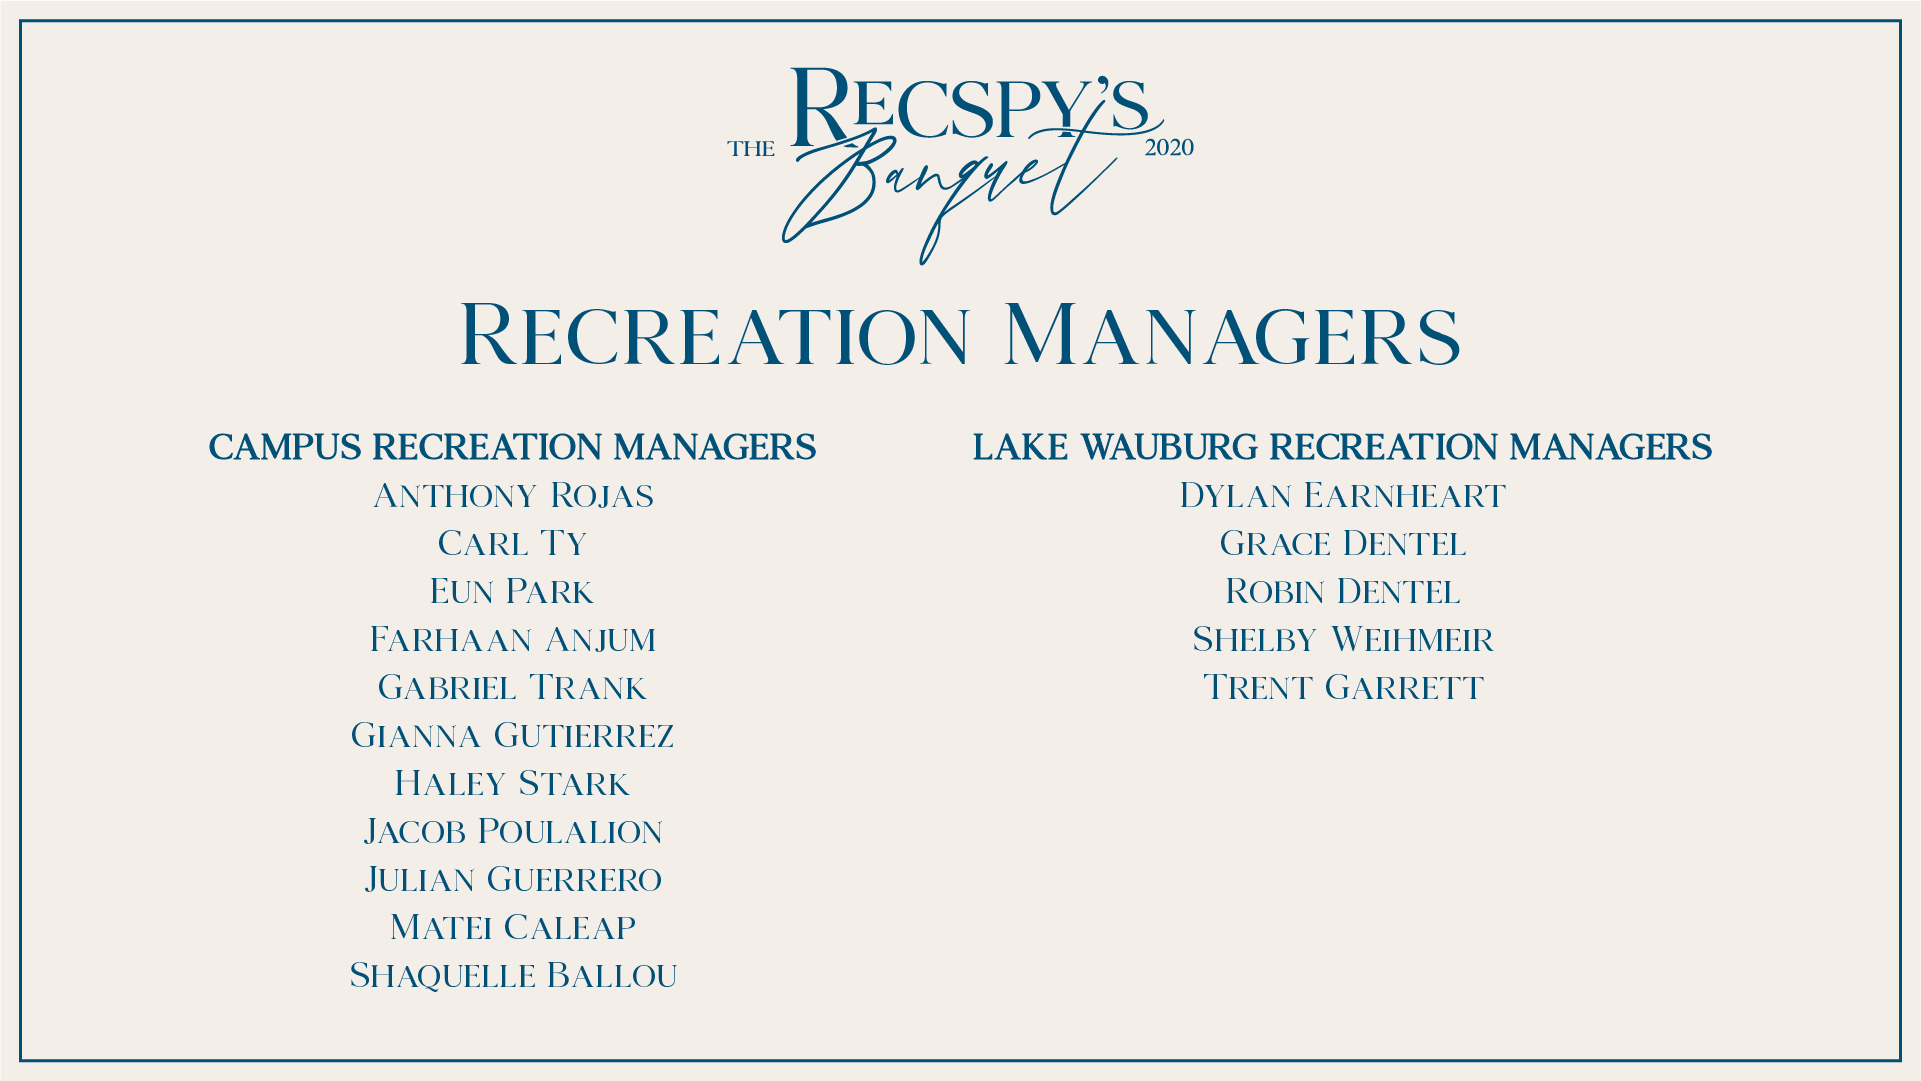 Recreation Managers